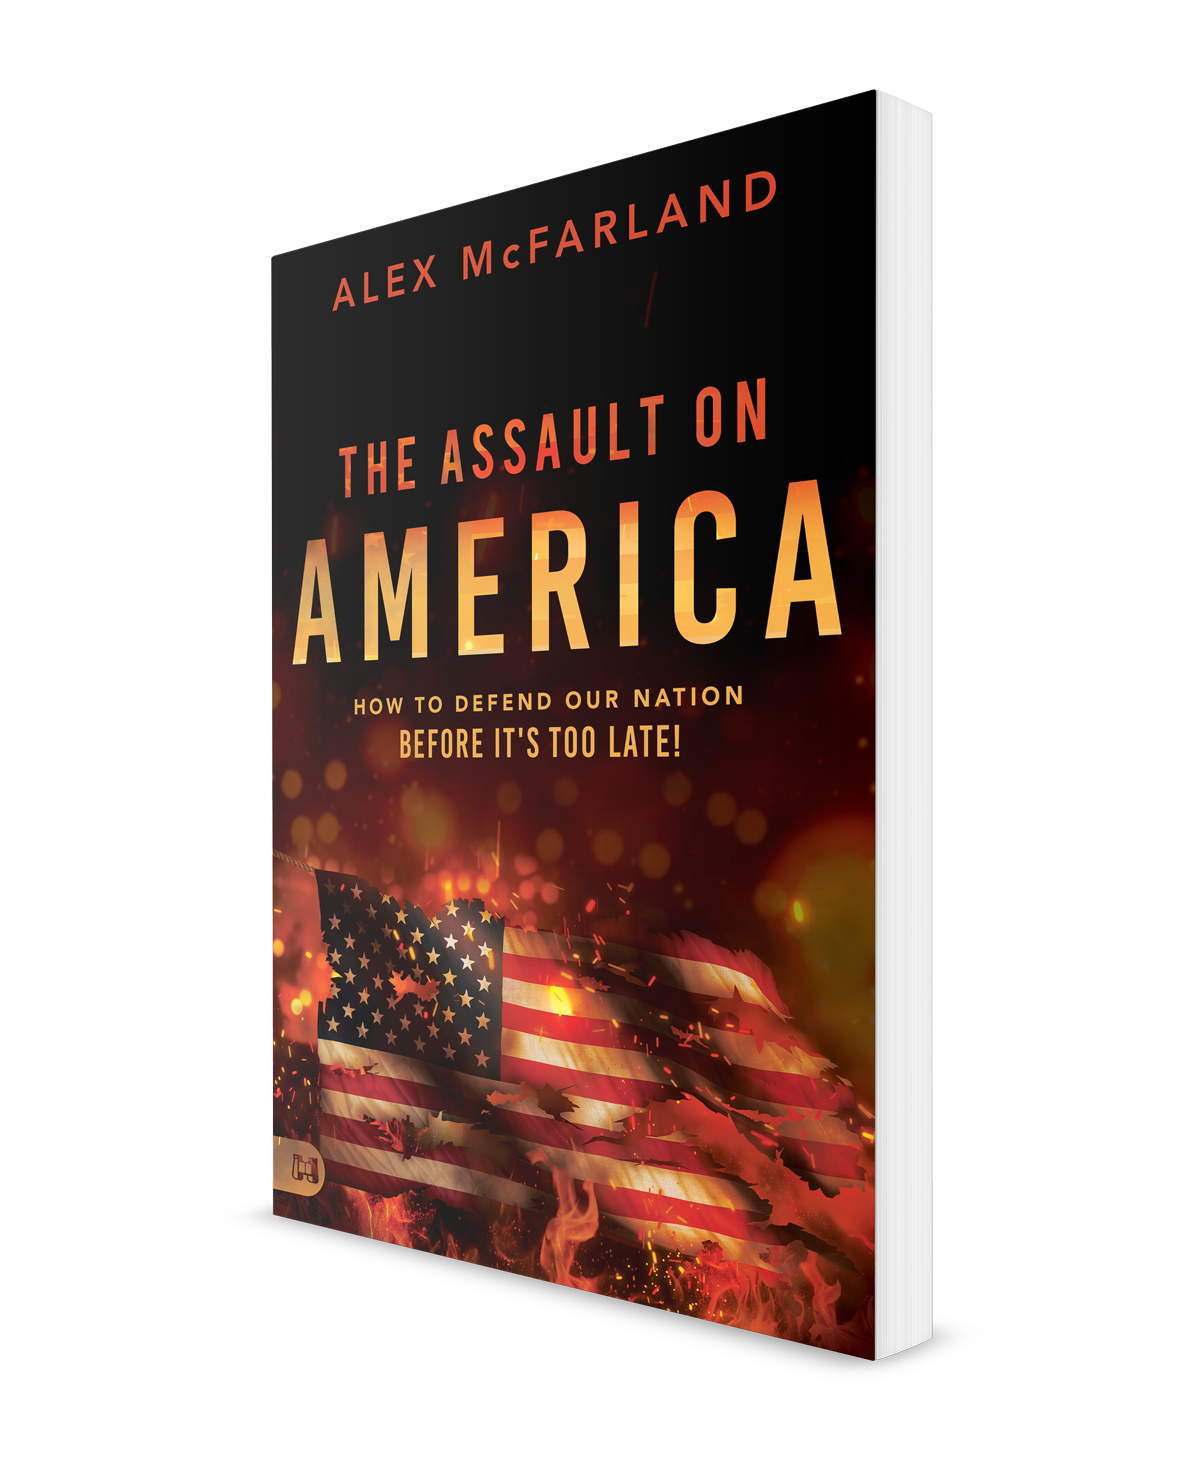 Author Alex McFarland - The Assault on America